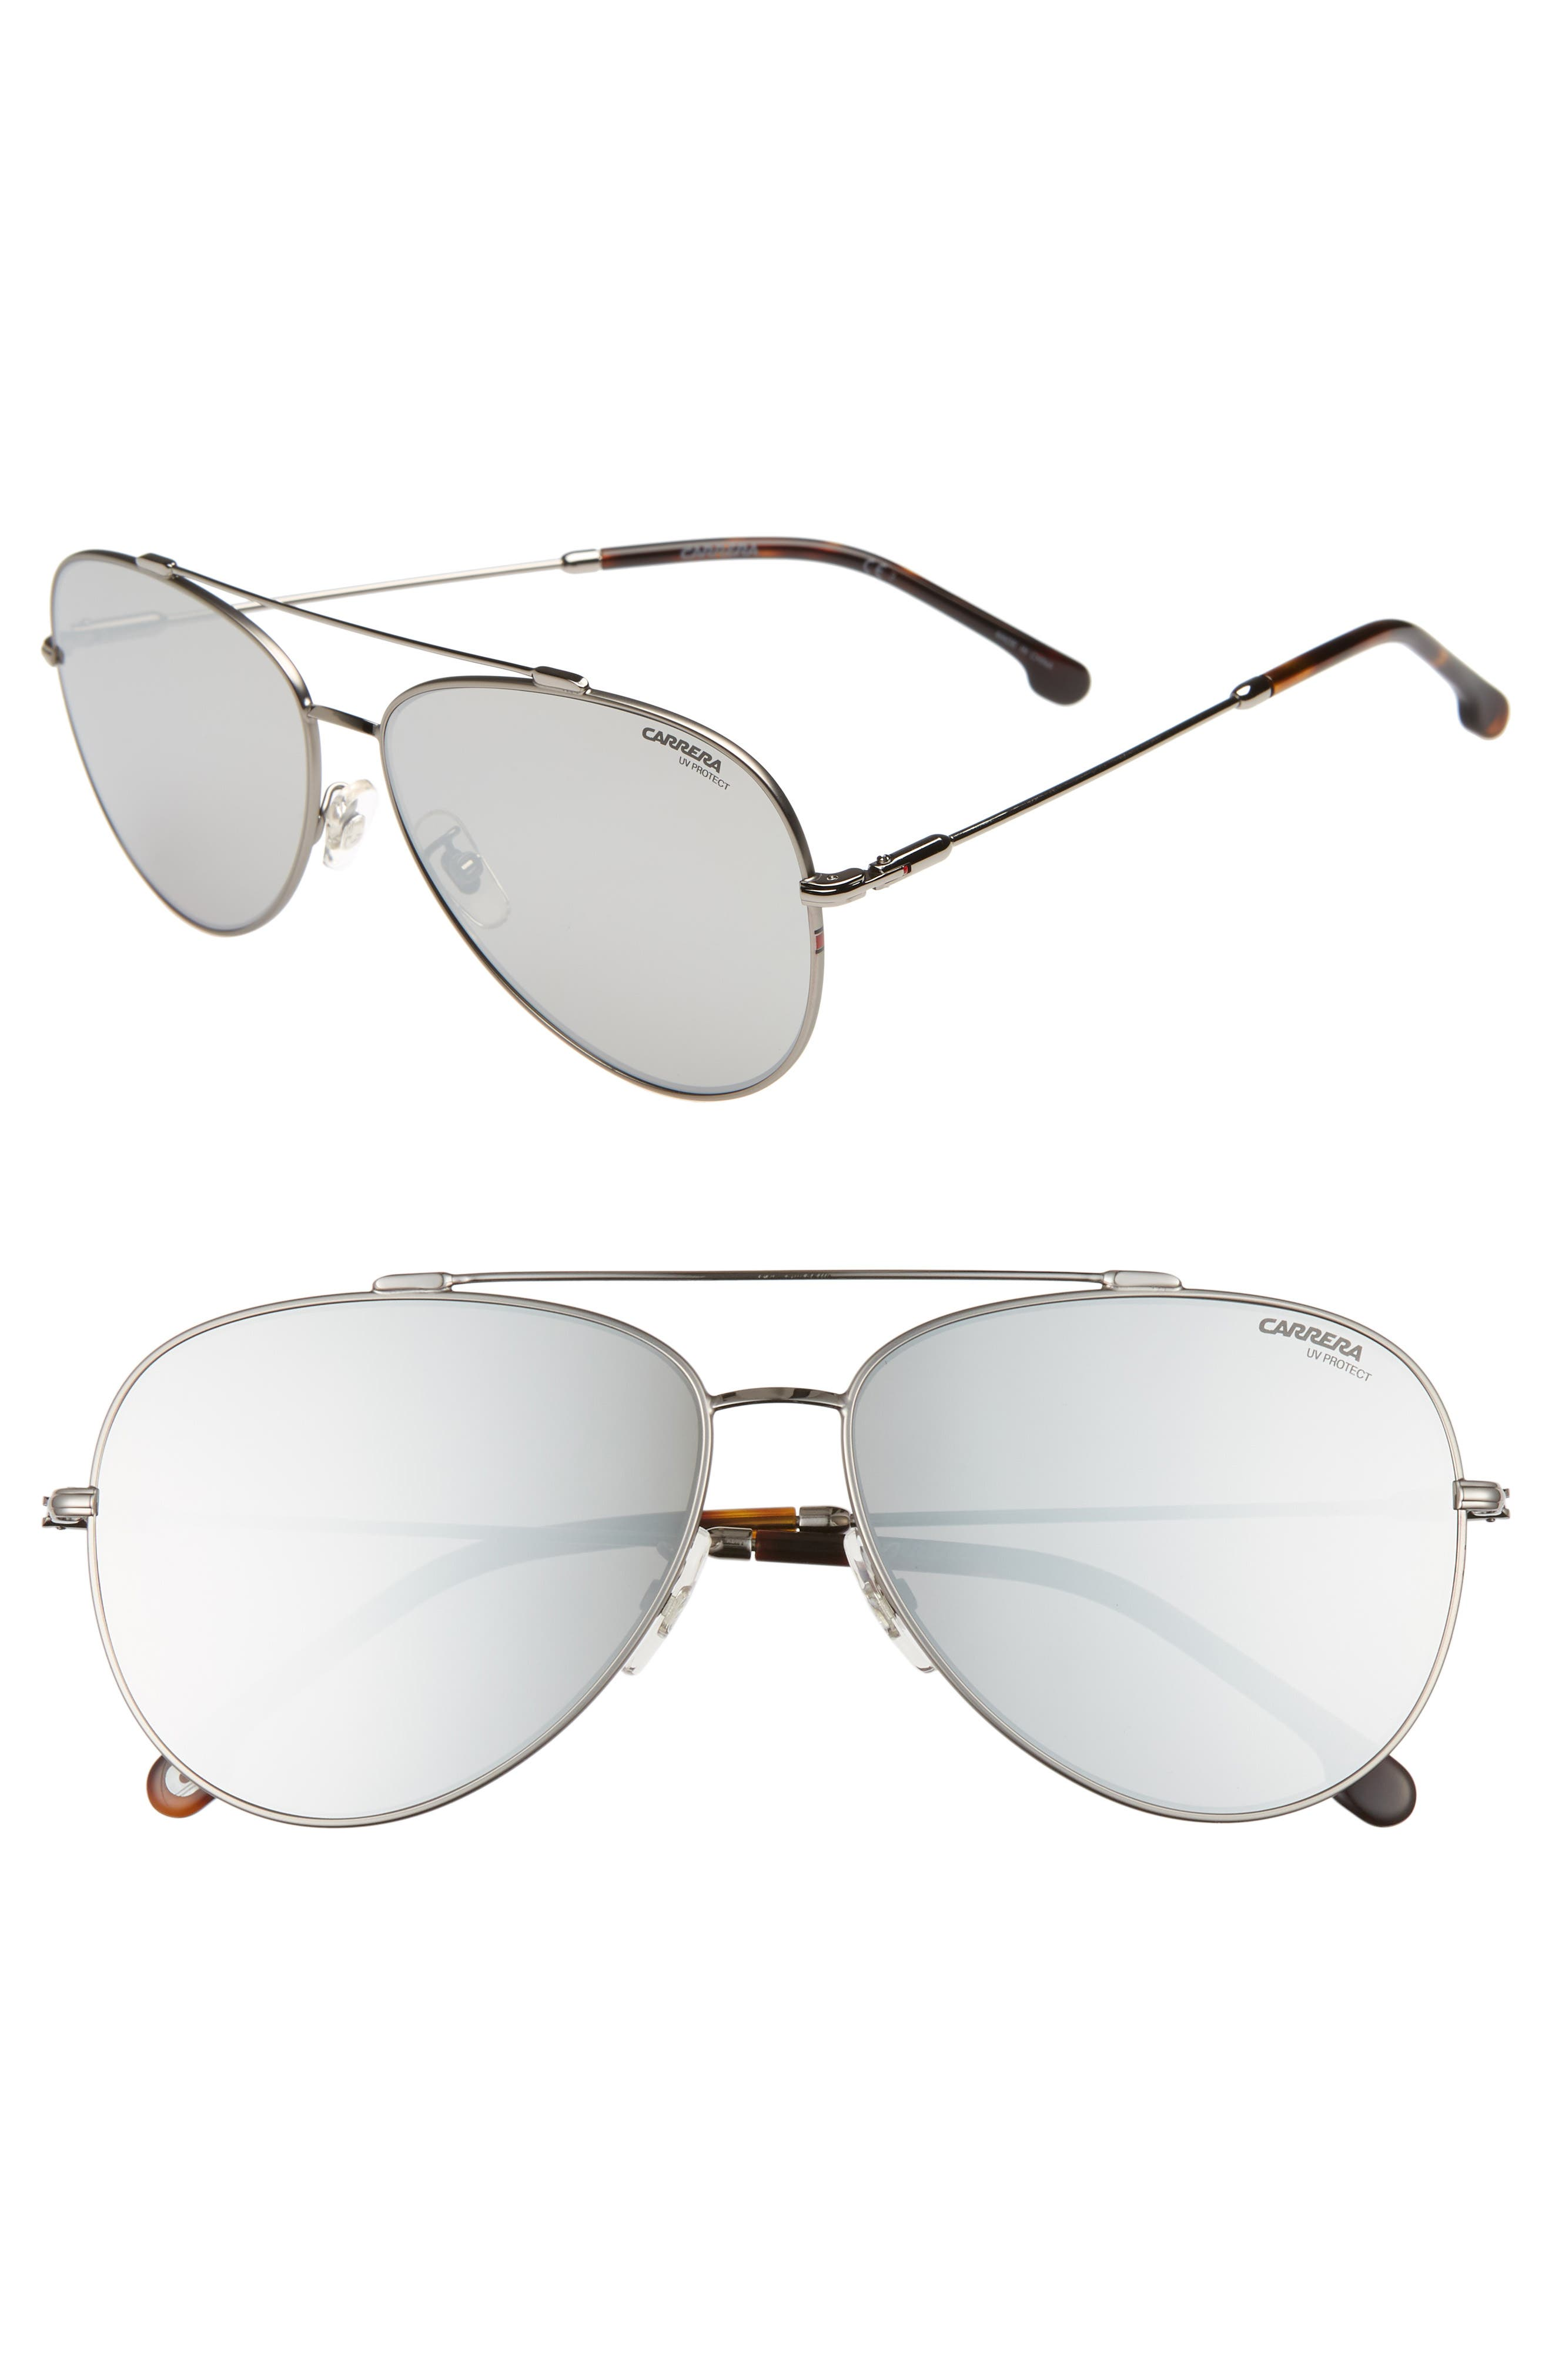 Carrera Eyewear 62Mm Aviator Sunglasses -